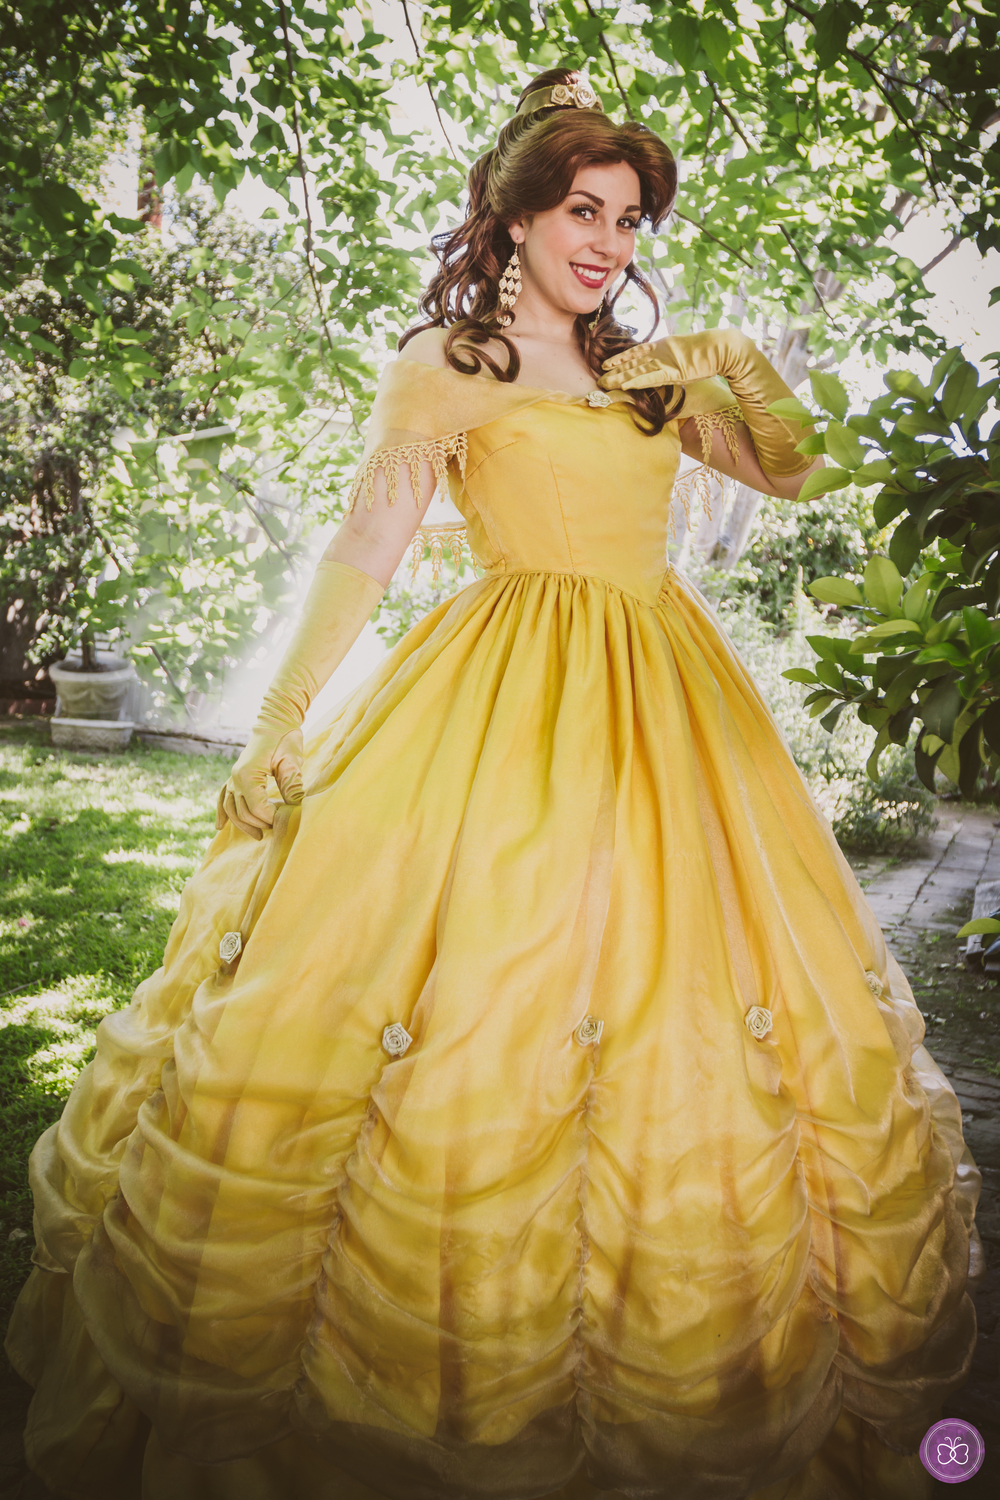 The ultimate French princess, Belle lives to share her love of books, dancing, and enchanted objects. Belle reminds children that true beauty comes from within.